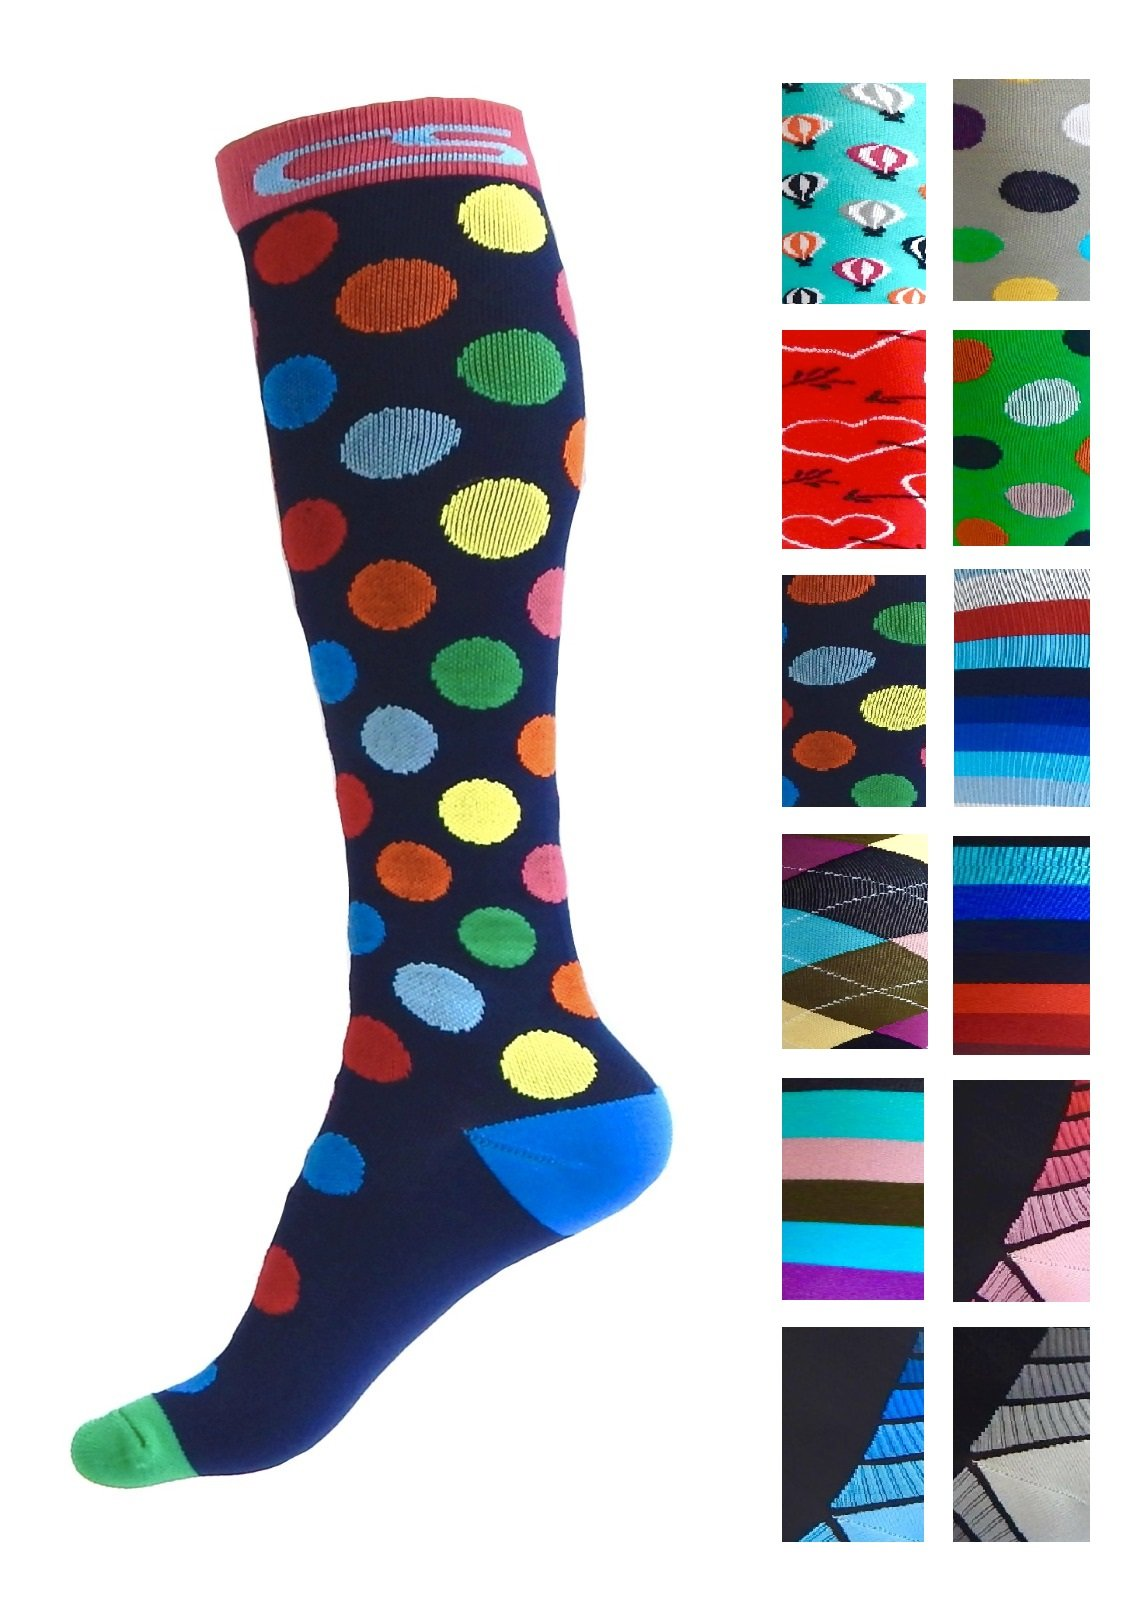 Compression Socks for Men & Women - BEST Graduated Athletic Fit for Running, Nurses, Shin Splints, Flight Travel, Maternity Pregnancy - Boost Stamina, Circulation & Recovery (Cool Dots, S/M)